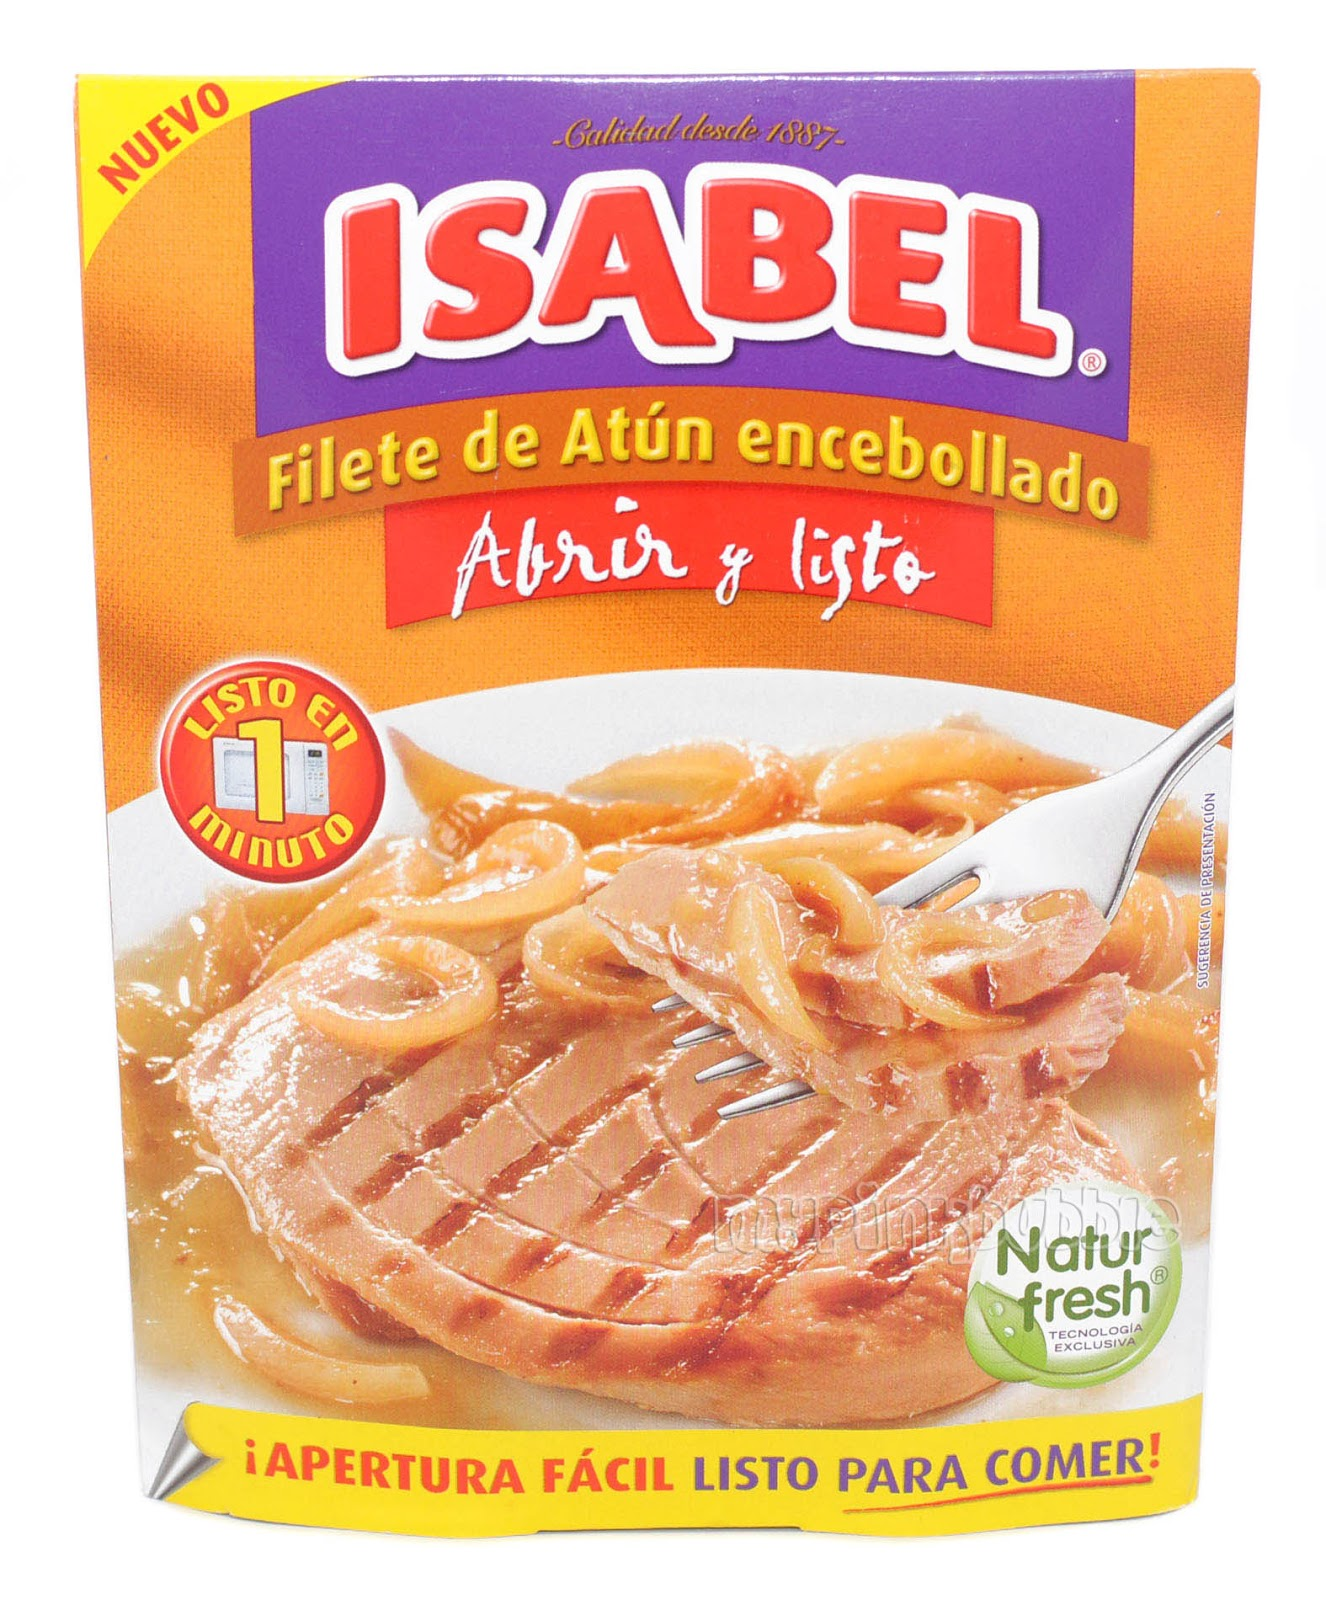 Isabel filete atun encebollado